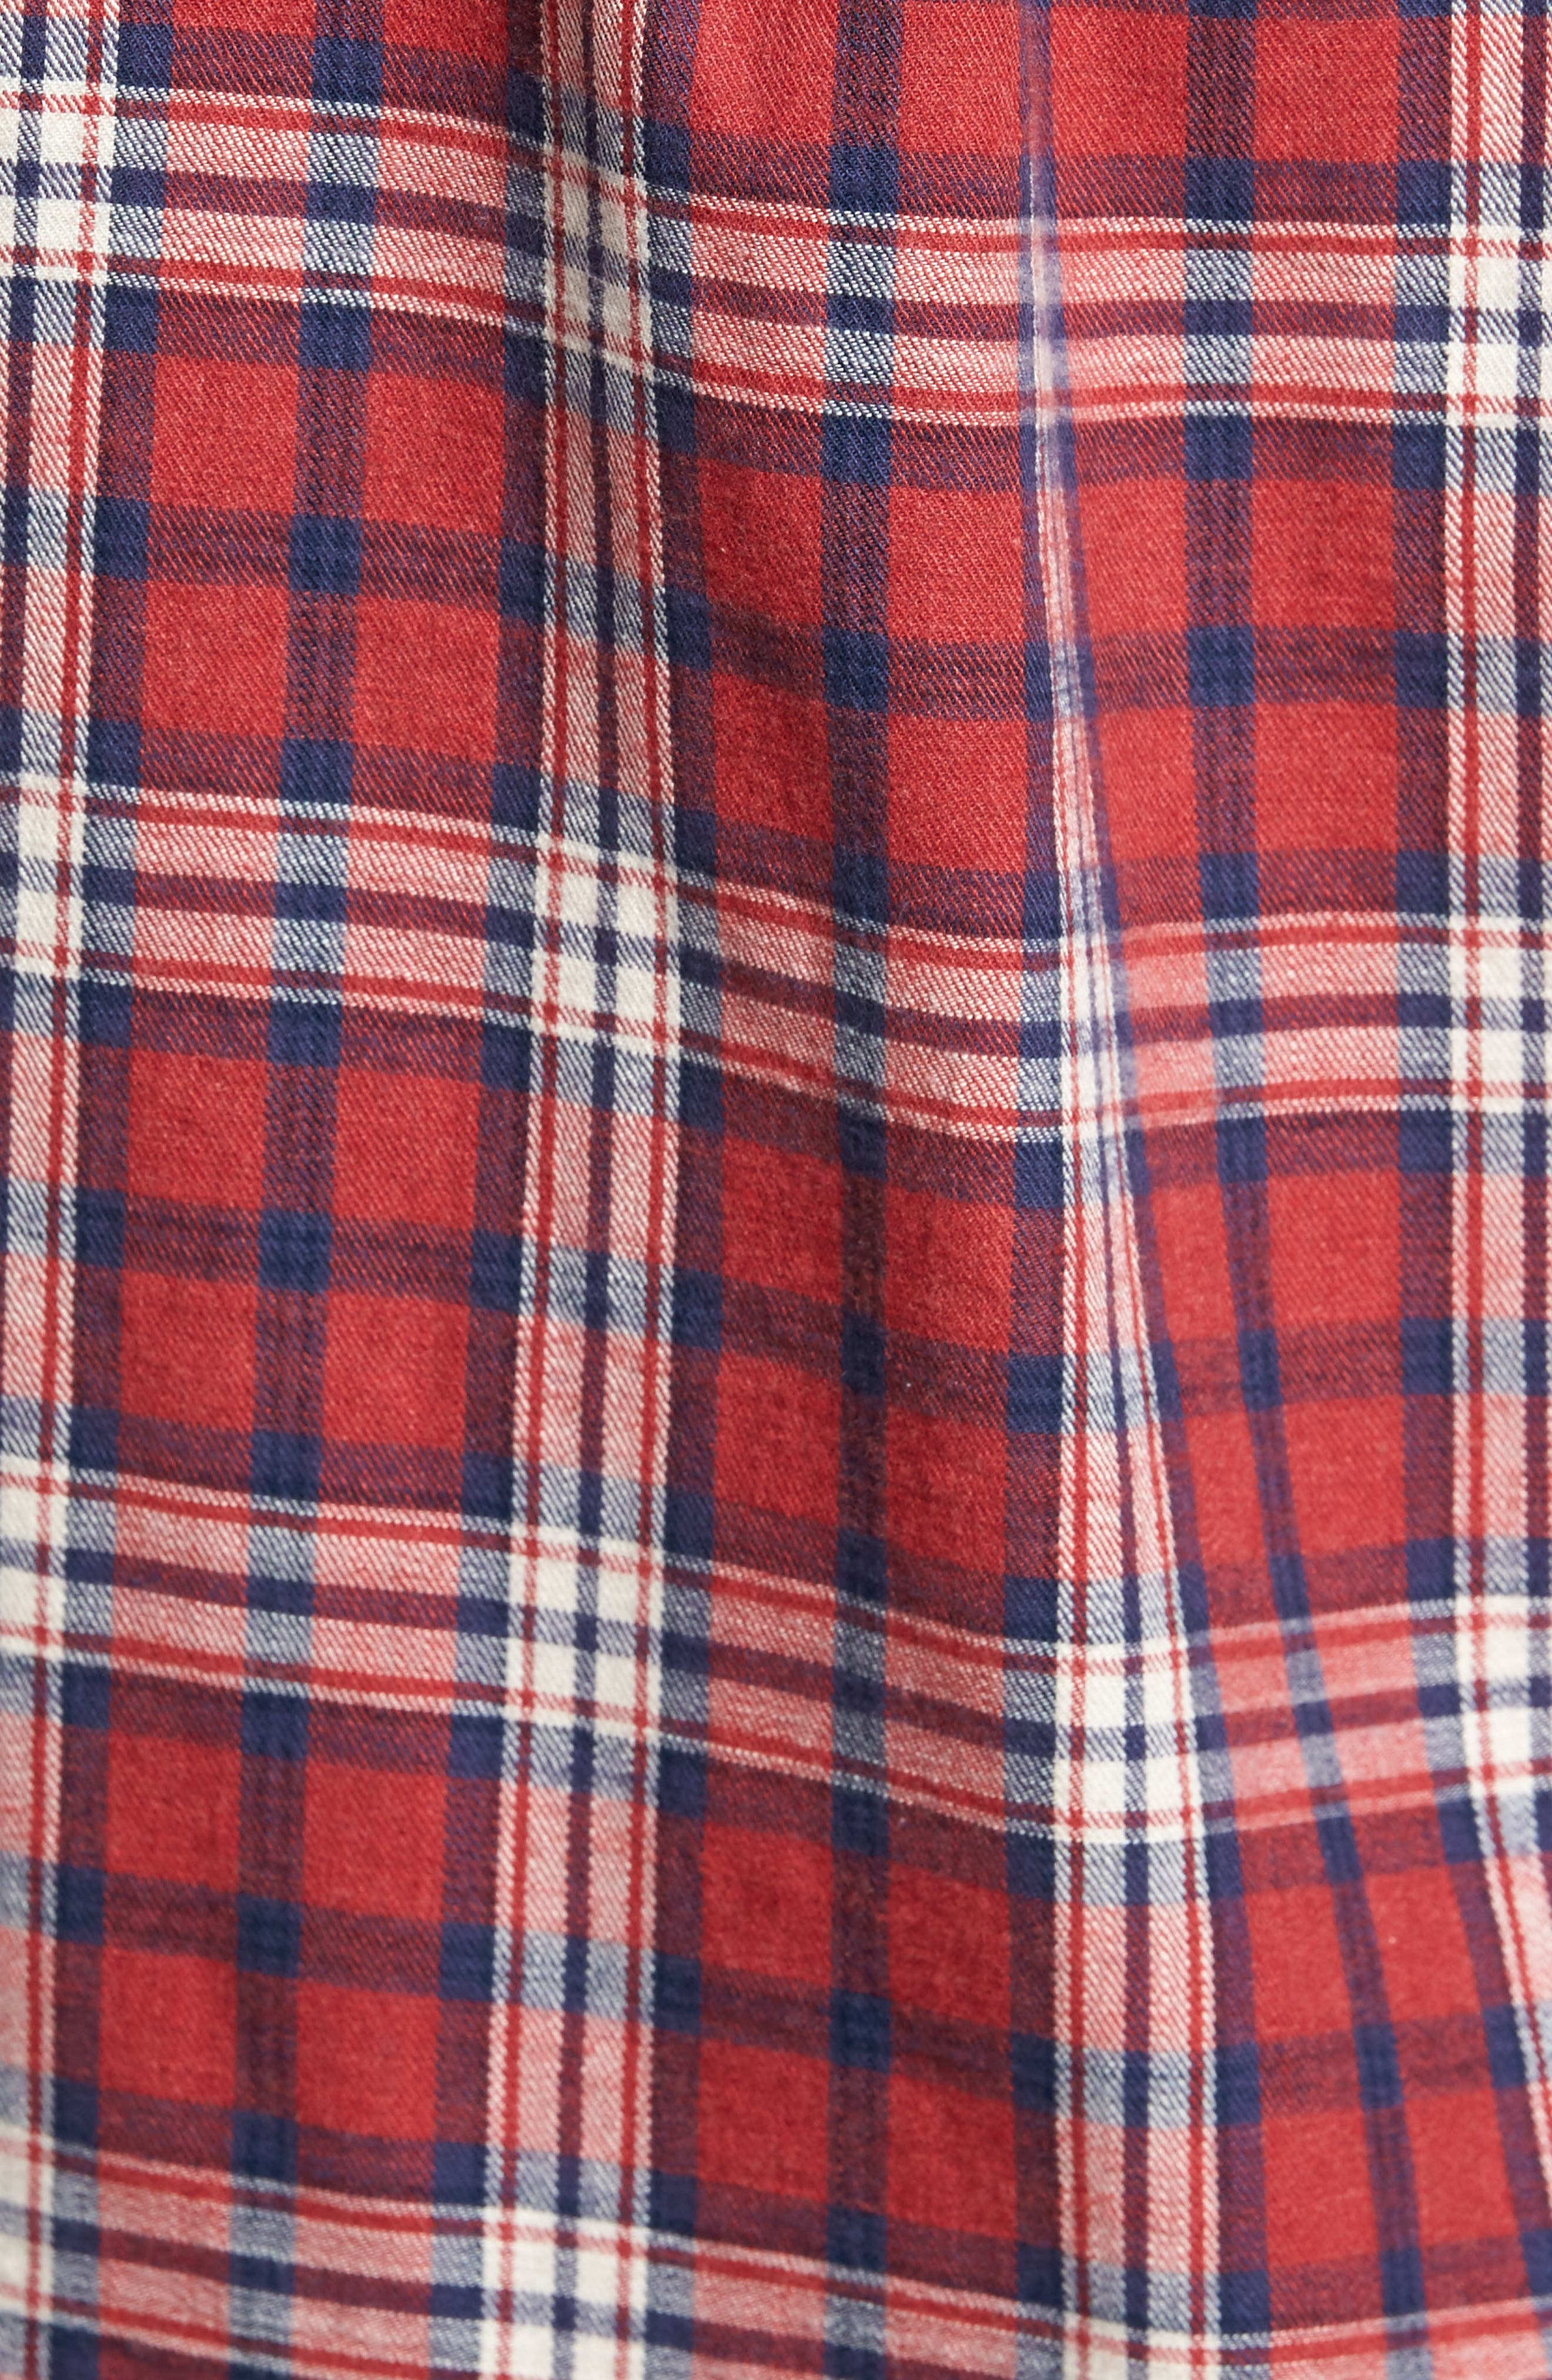 Winslow Slub Plaid Twill Sport Shirt,                             Alternate thumbnail 5, color,                             Red